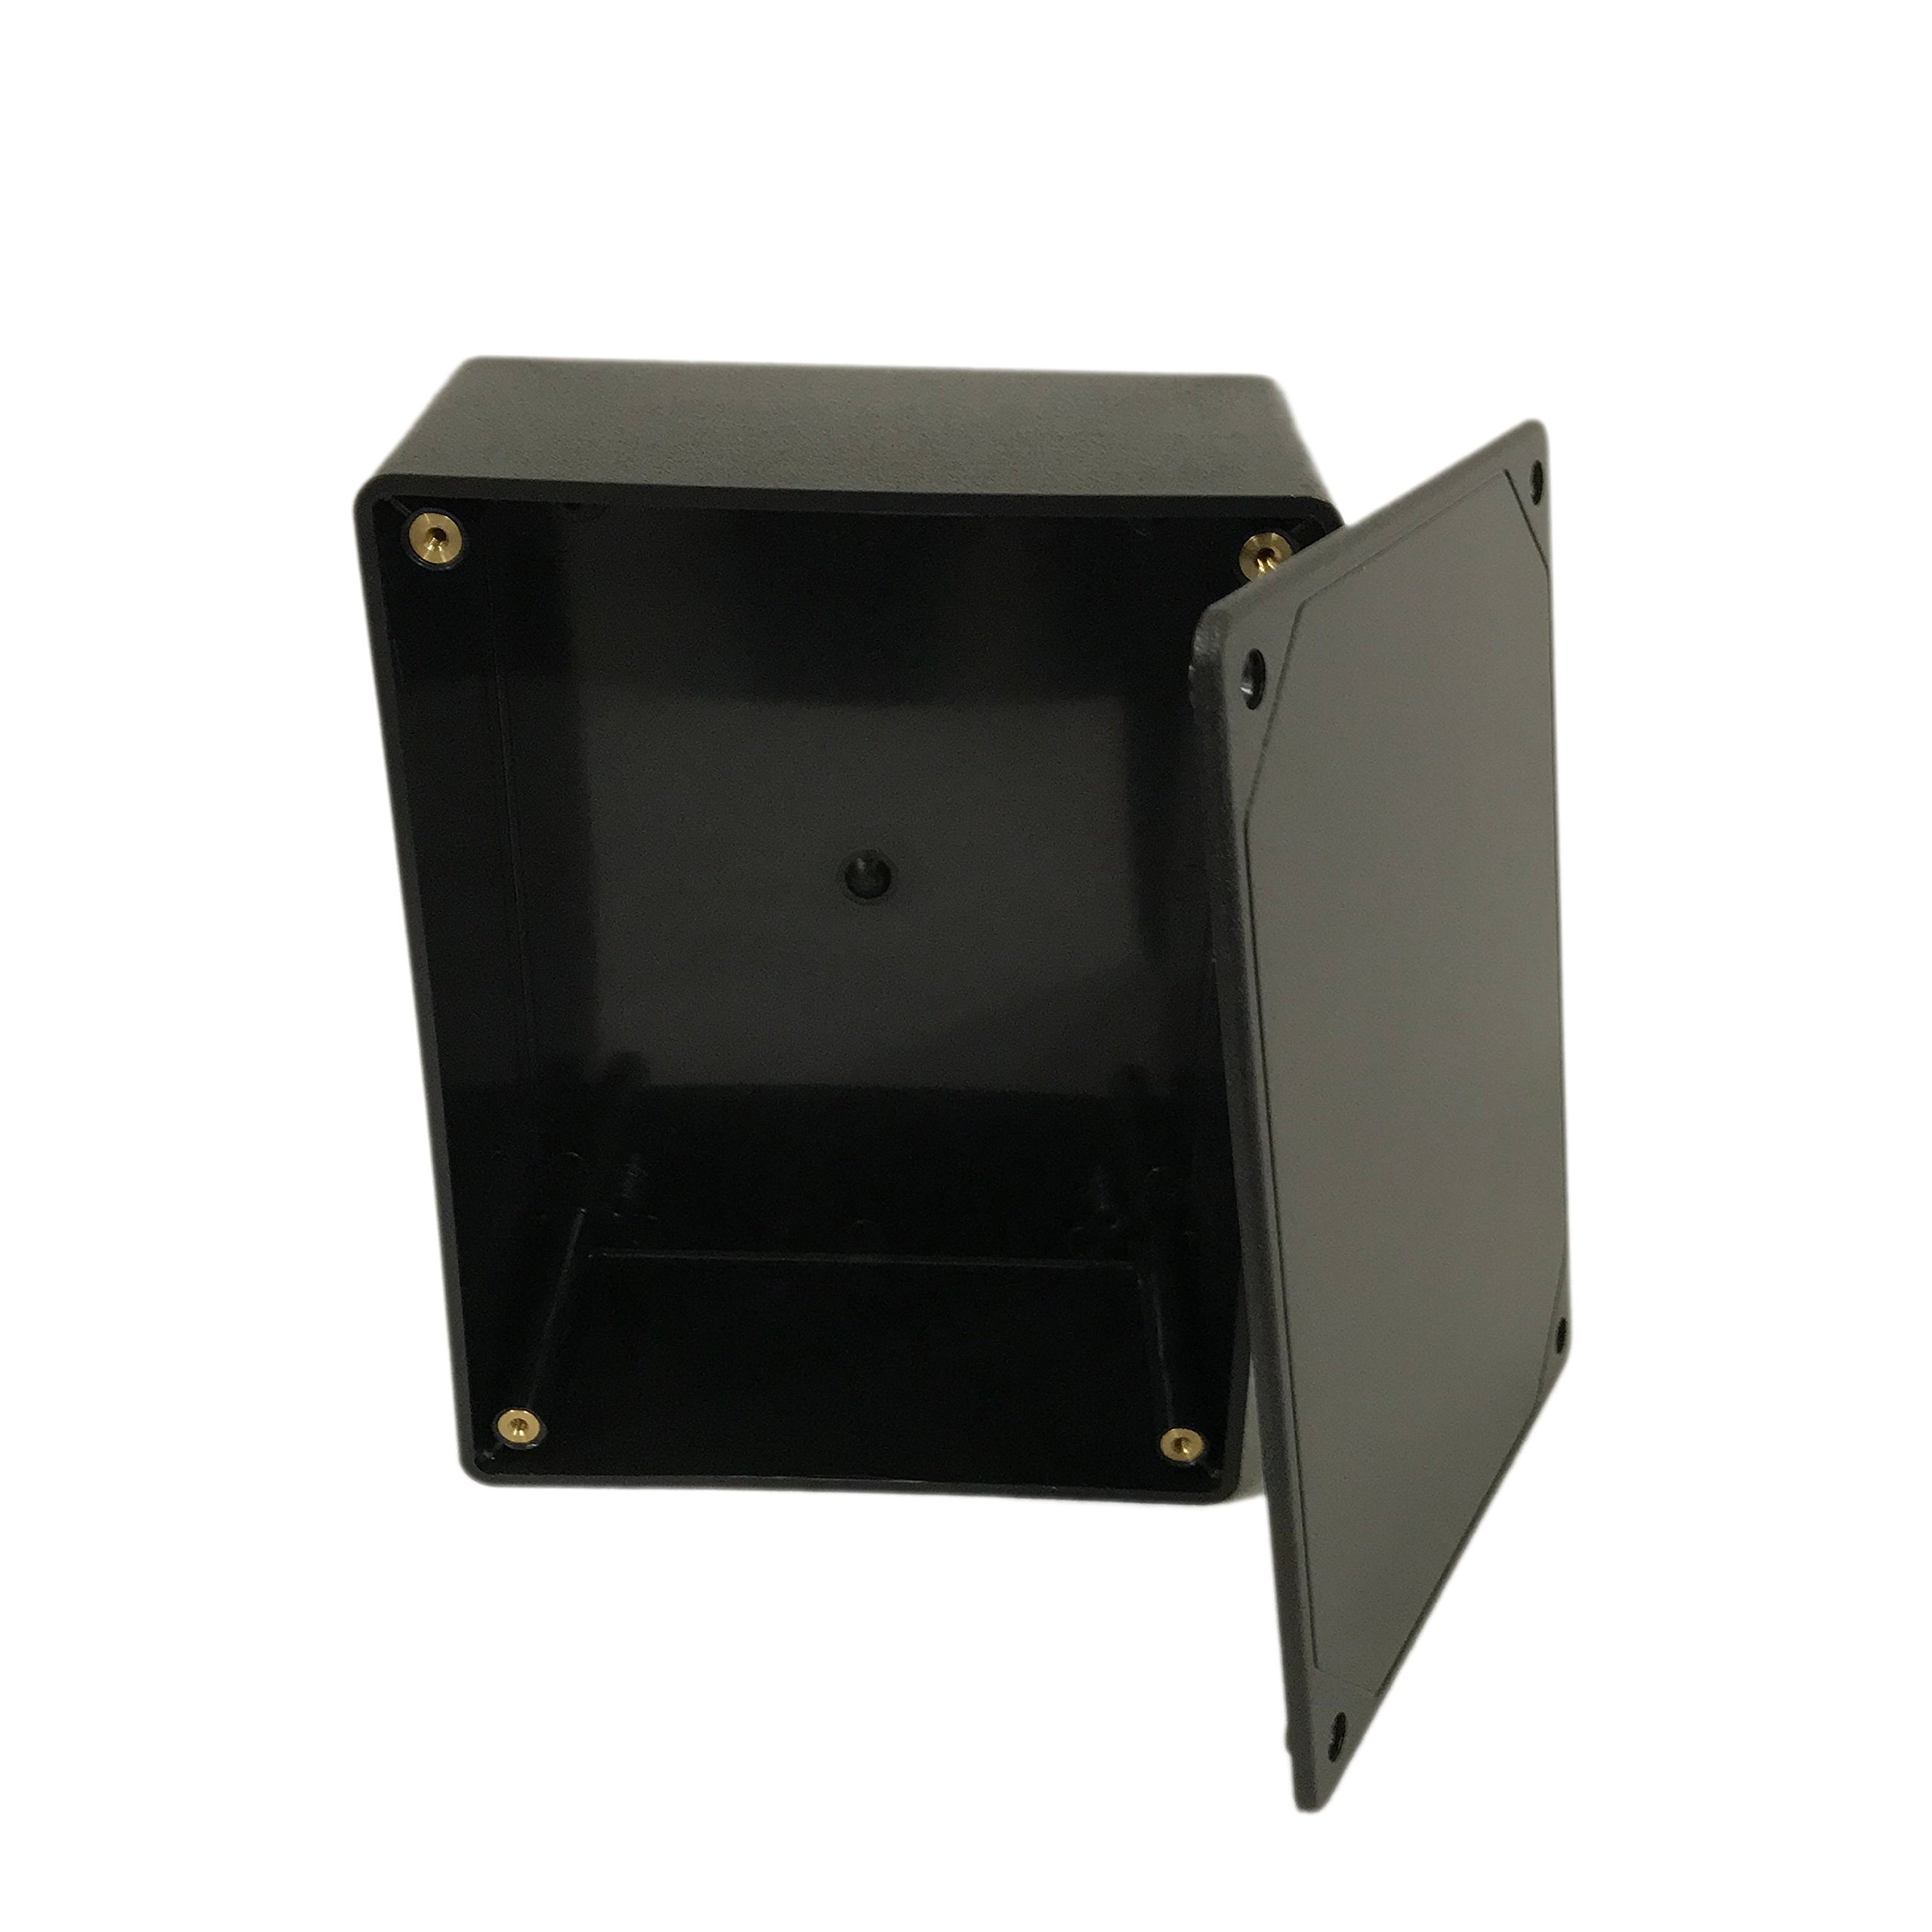 BUD Industries CU-3283 Plastic Style A Utility Box, 6-3/32'' Length x 4-19/32'' Width x 2-23/64'' Height, Black Texture Finish